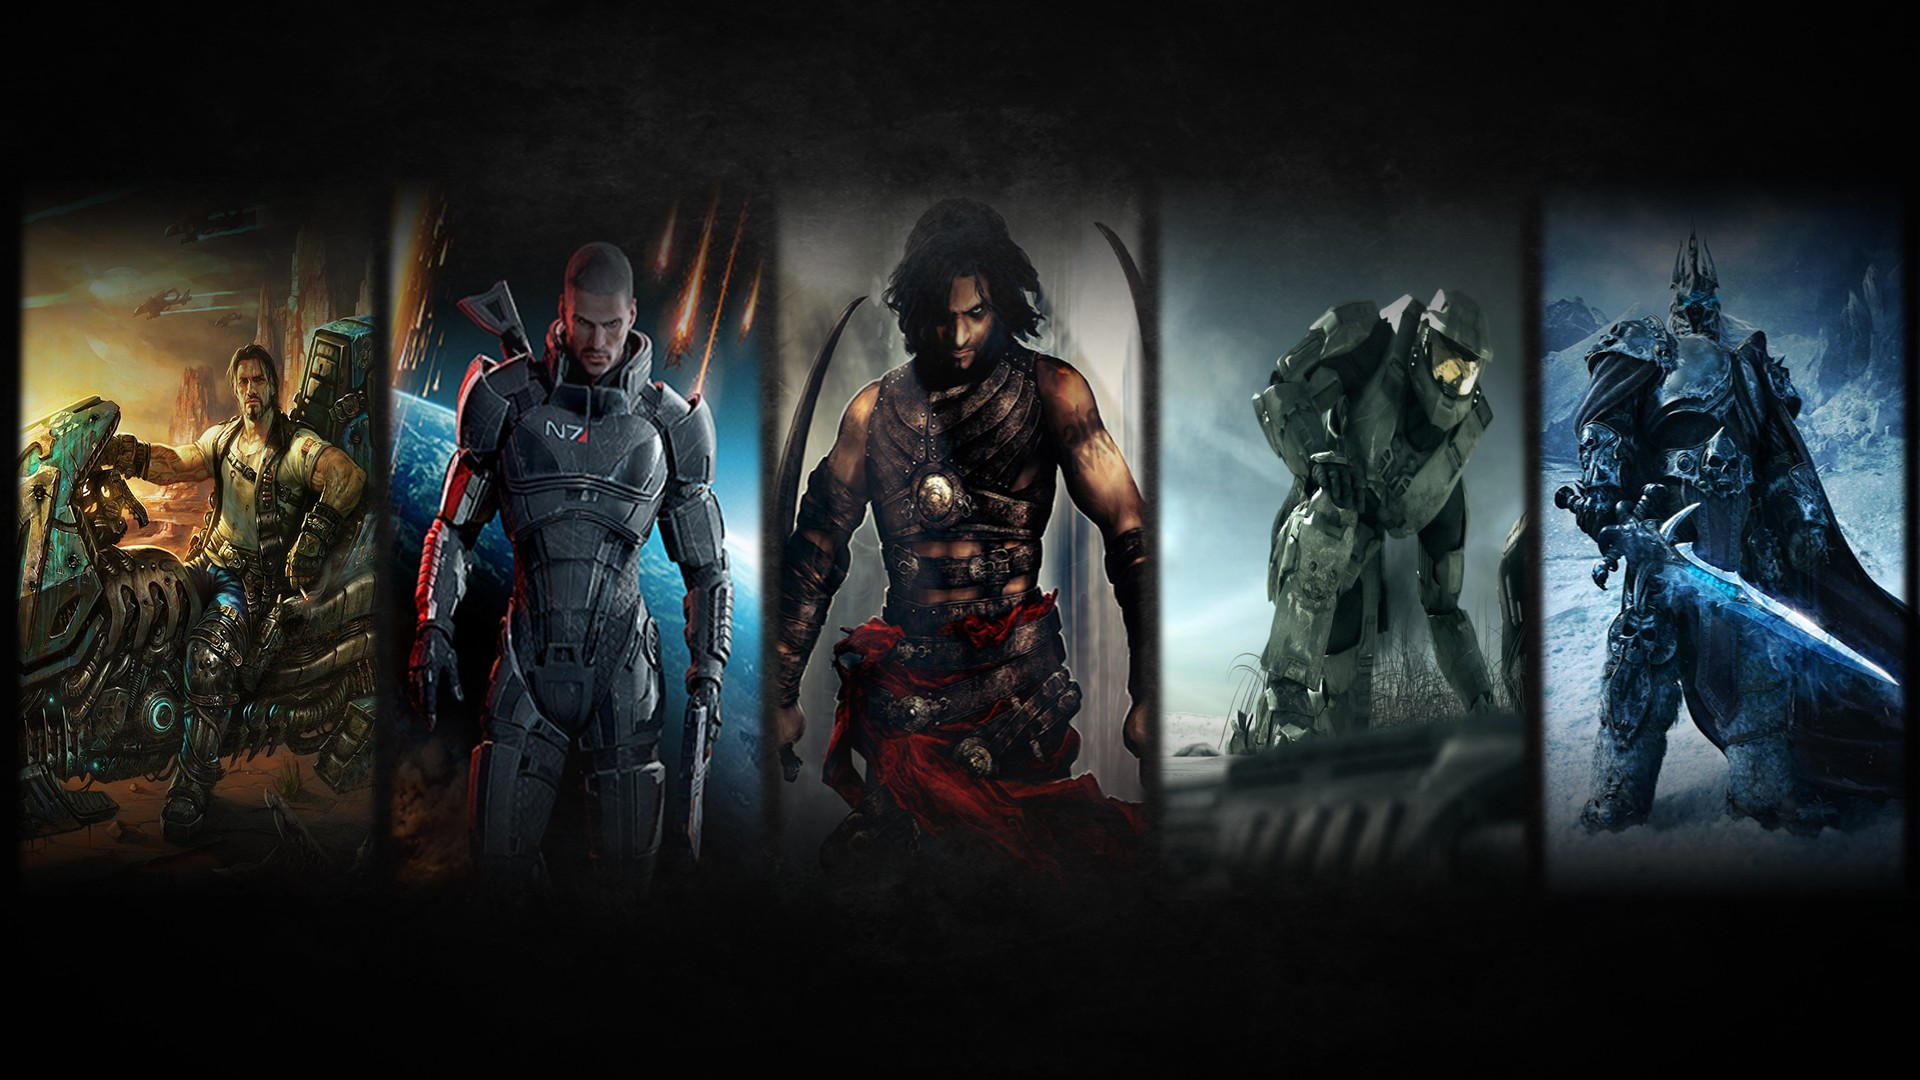 group of video game wallpapers 8241